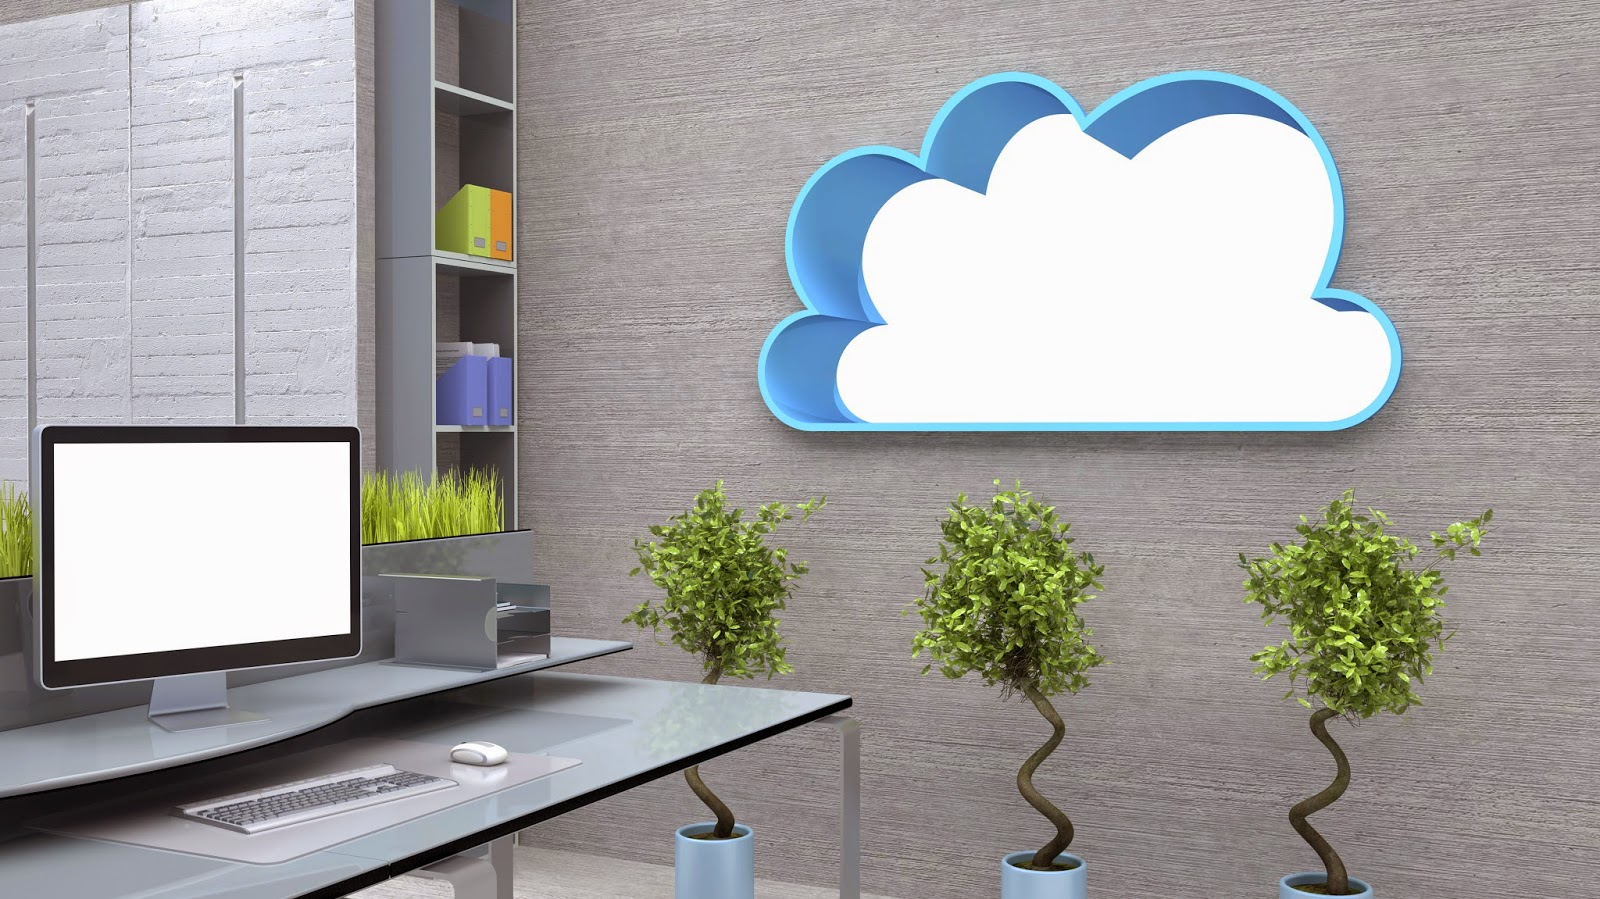 Cloud-shaped window in modern office